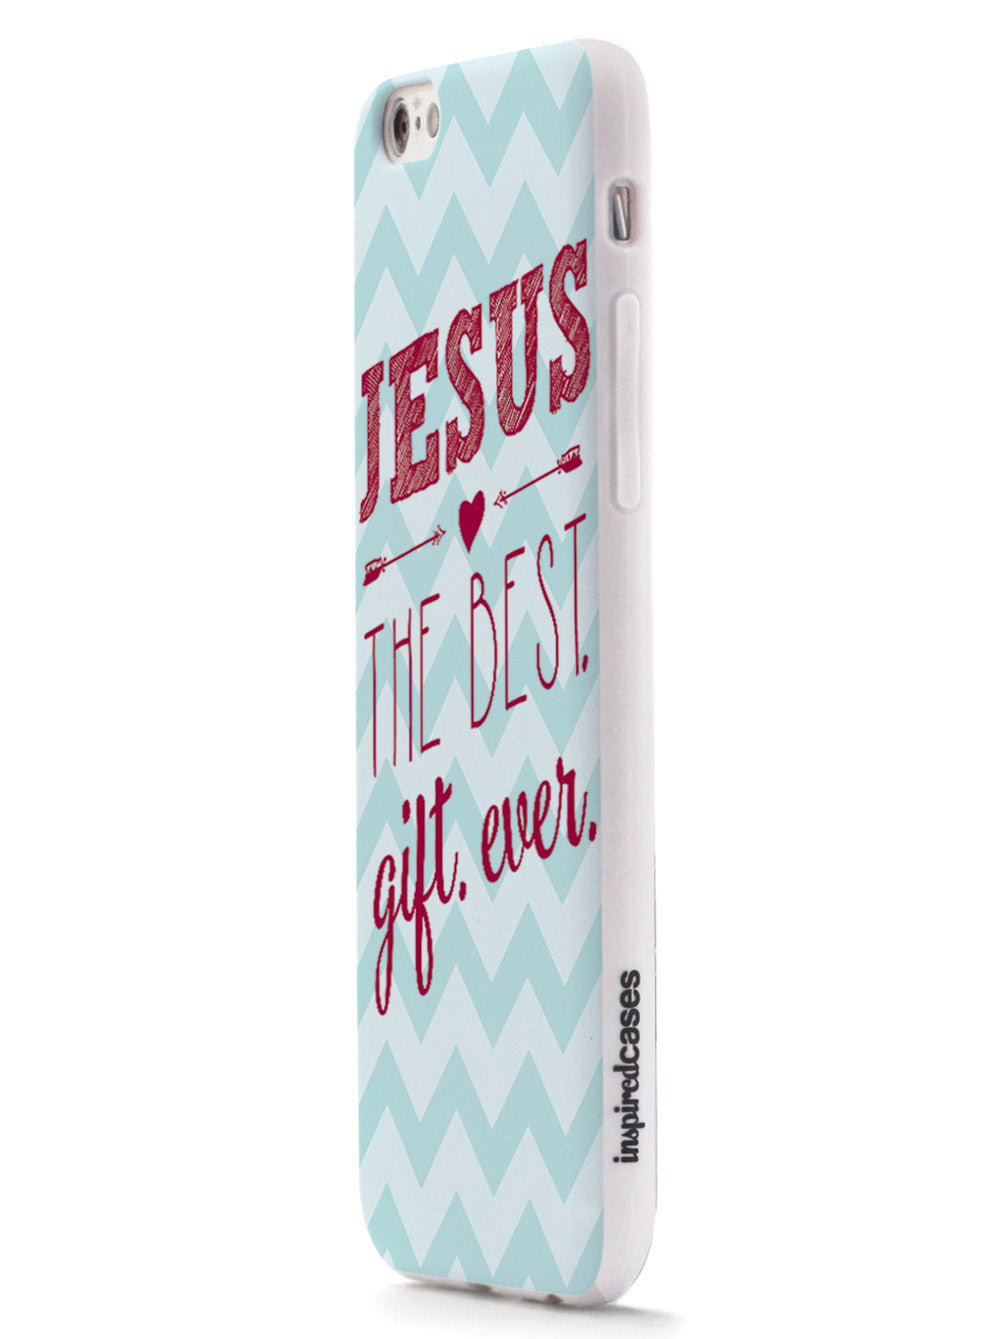 Jesus: The Best Gift Ever Case